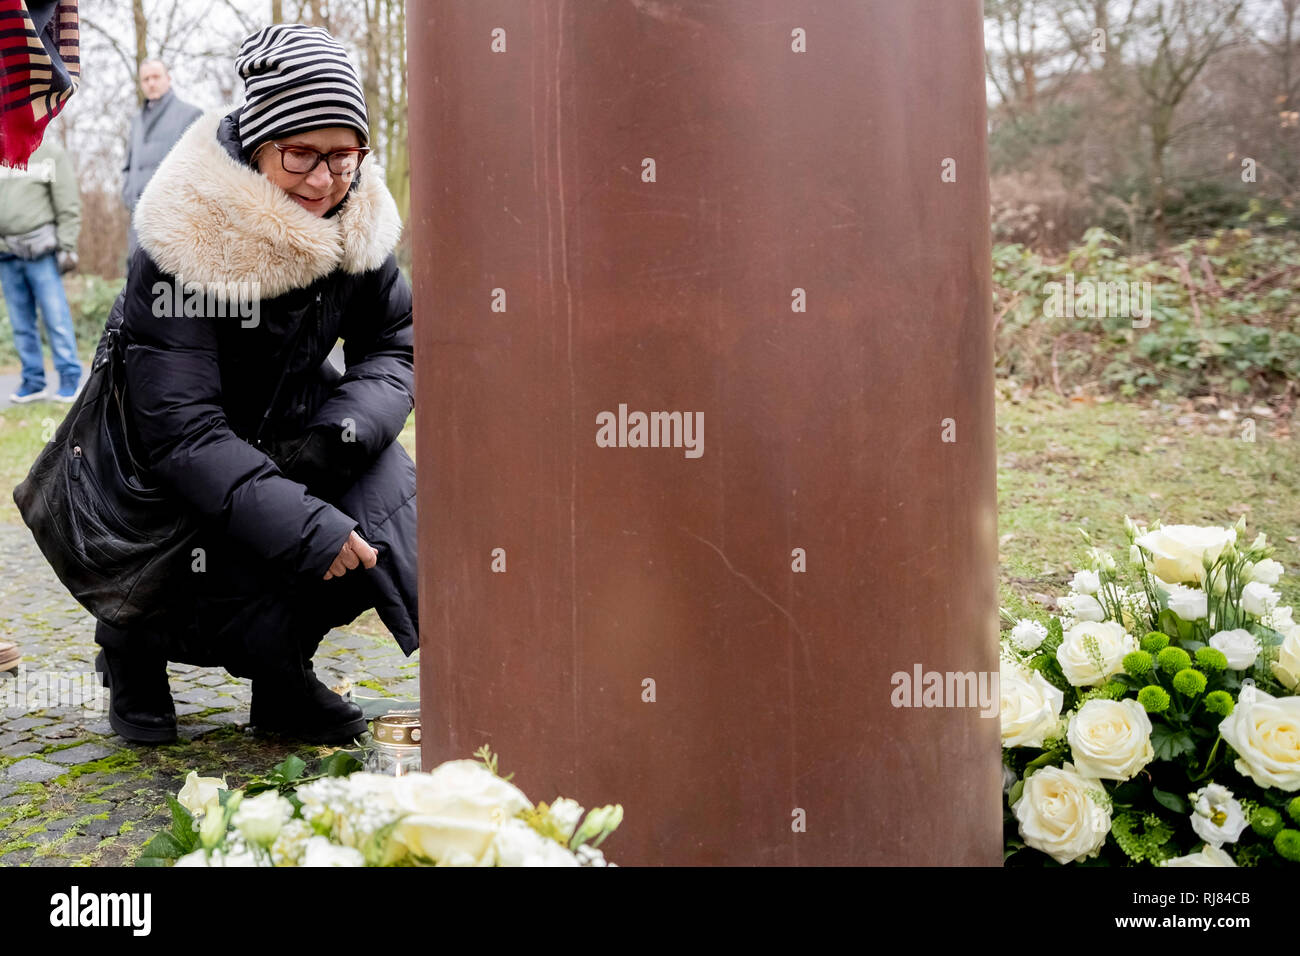 Berlin, Germany  05th Feb, 2019  Karin Gueffroy, mother of Chris